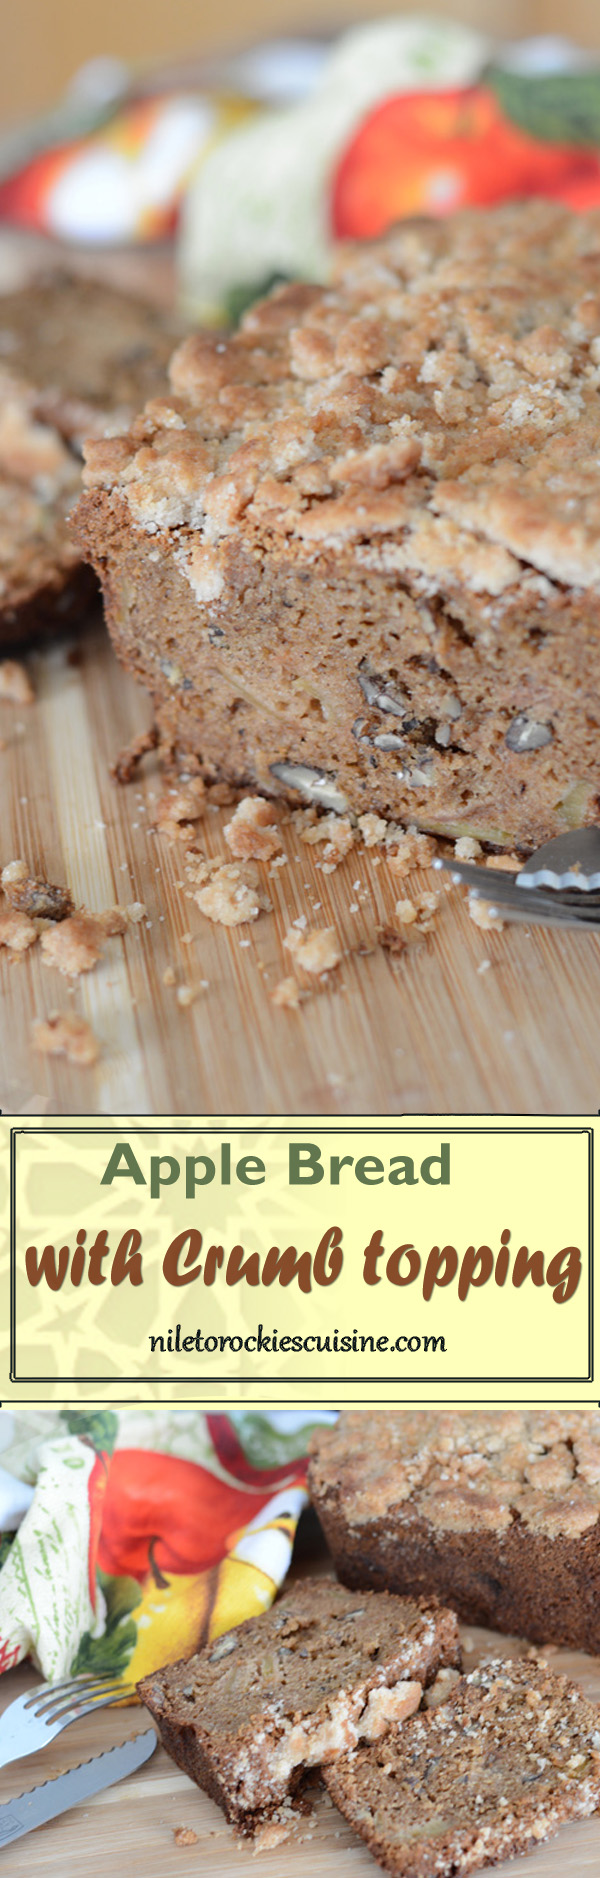 A simple and easy apple bread recipe, a Fall delight, filled with fall aromas, for breakfast, dessert or just an in-between meal snack with a cup of coffee watching the golden leaves fall down 🍂 🍂. So warm yourself up with this really delicious apple cinnamon bread with crumb topping.